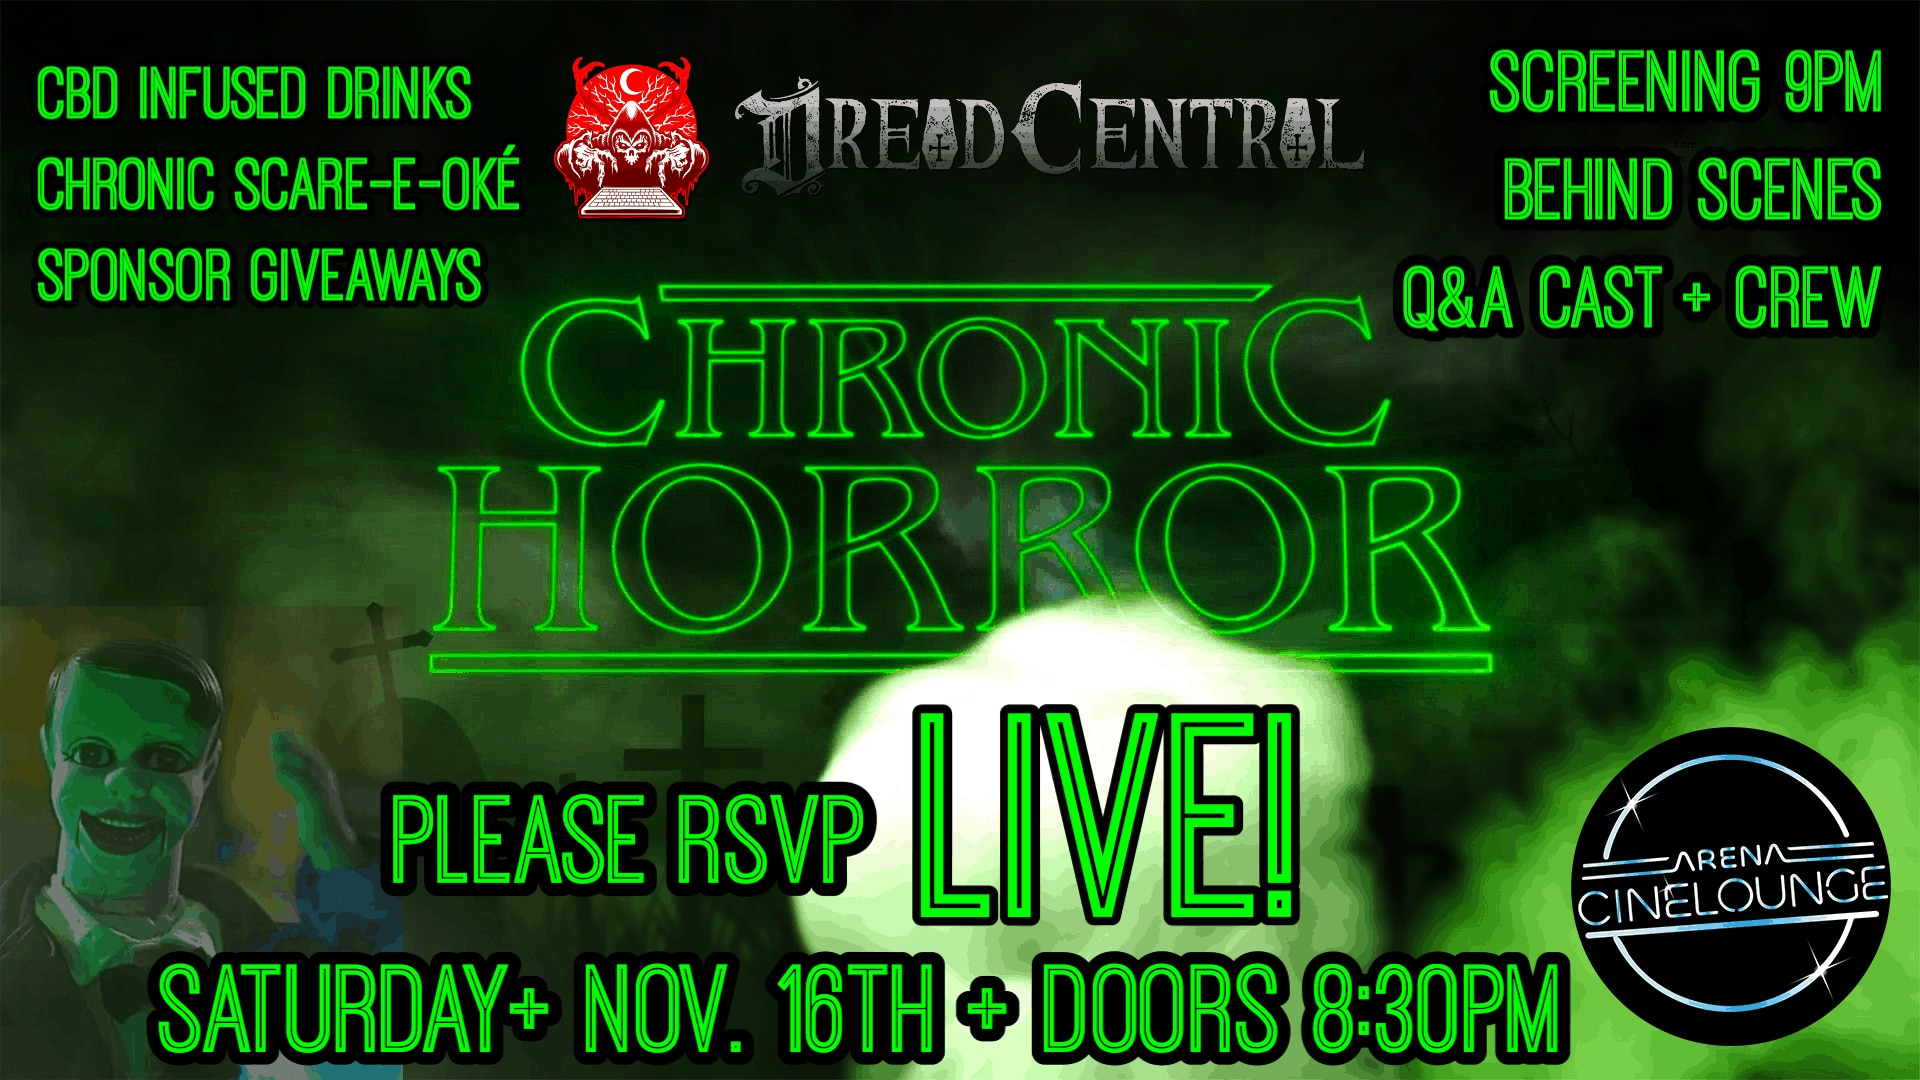 chronichorrorflyer 1 - Saturday: CHRONIC HORROR's Free Event in Hollywood Will Include Behind-the-Scenes, Q&A, and Surprises!